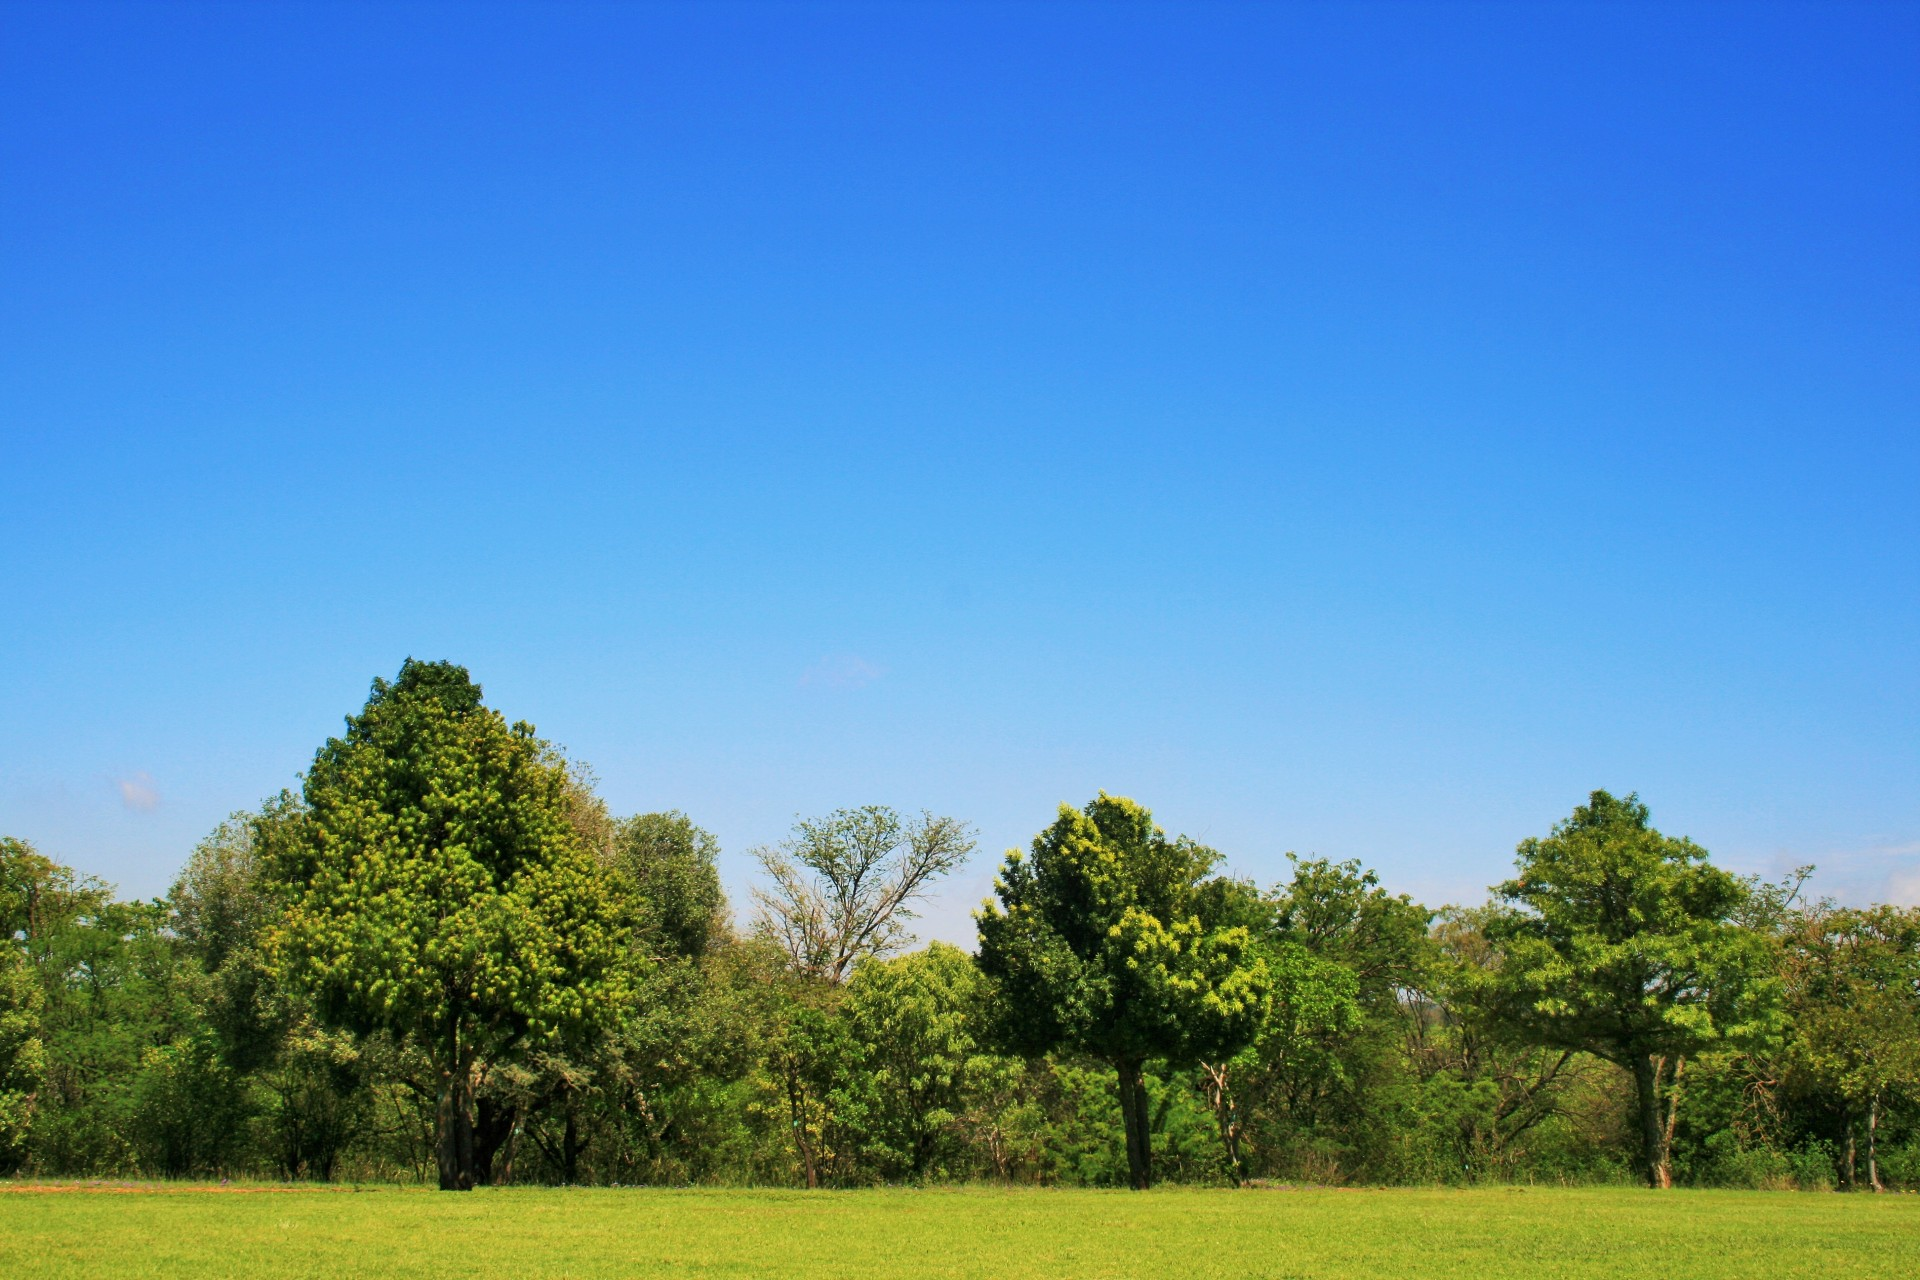 Trees, Lawn And Sky Free Stock Photo - Public Domain Pictures